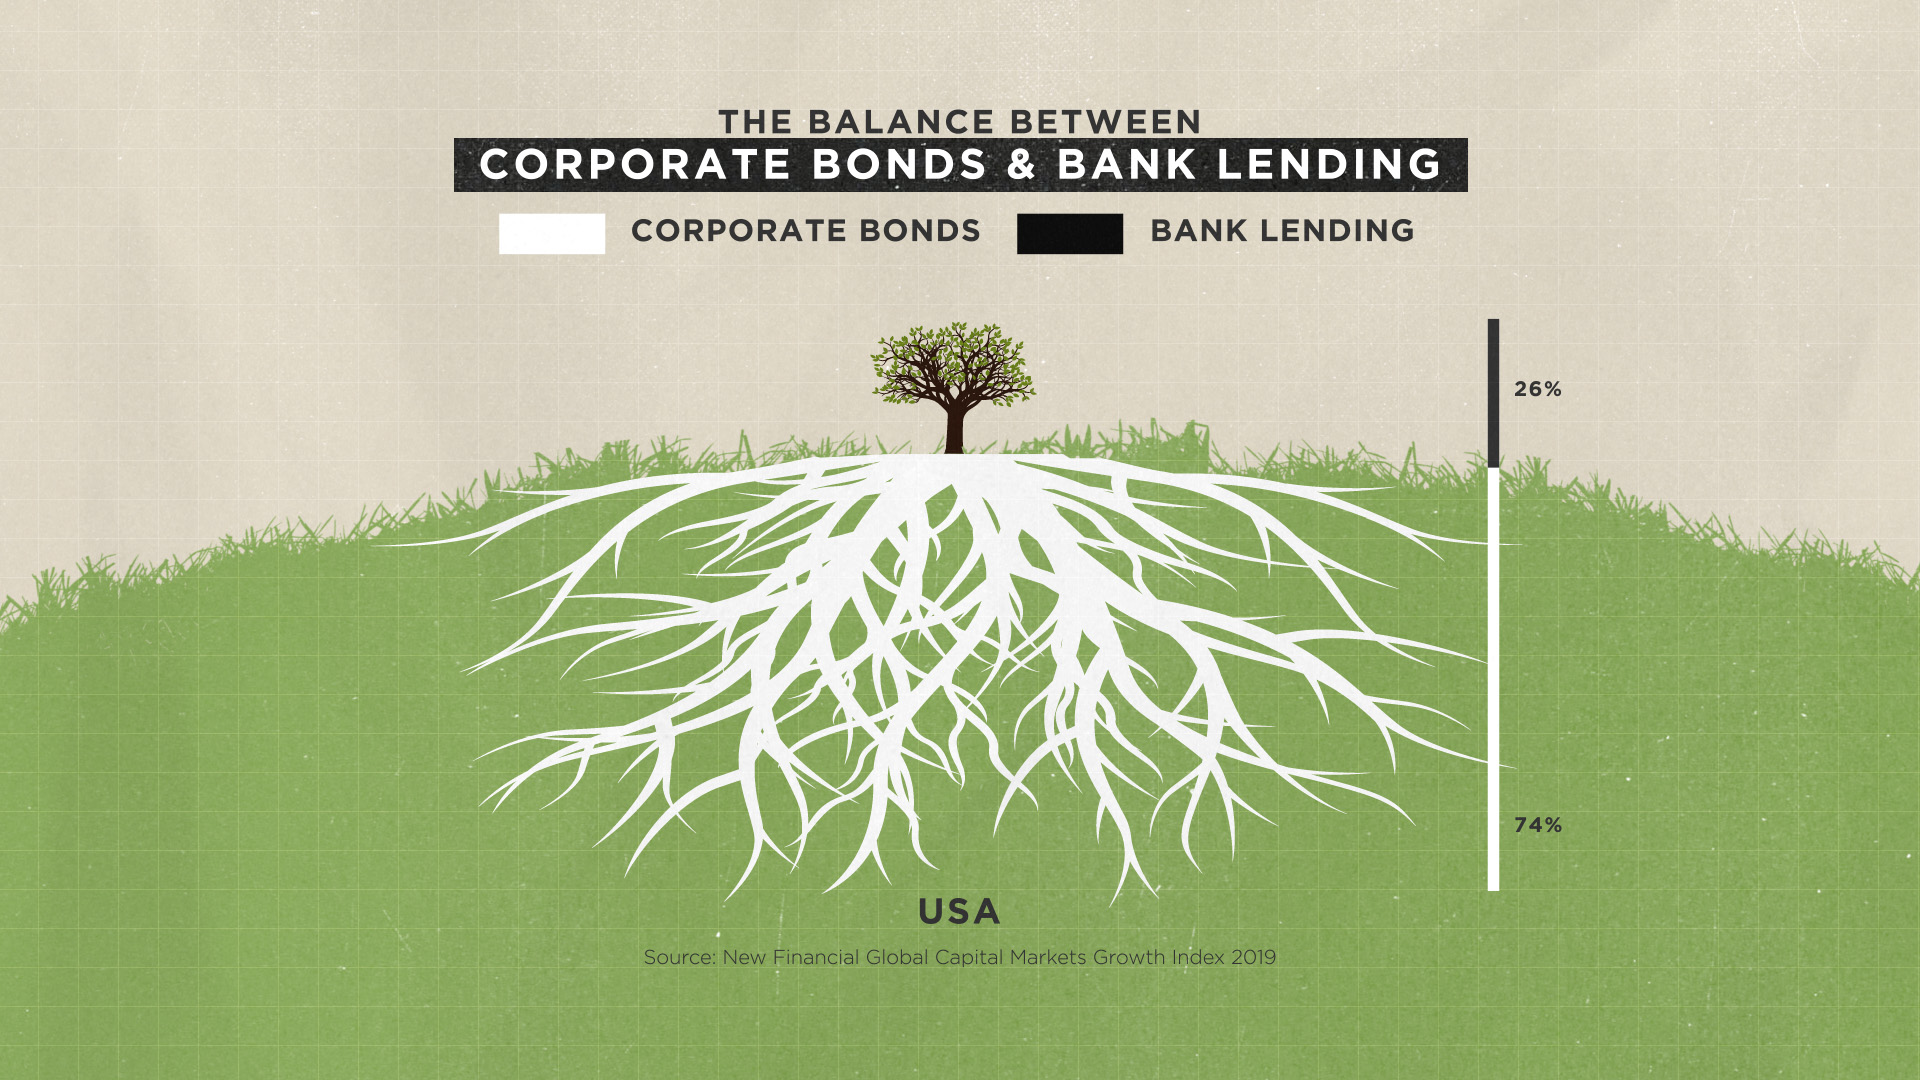 The Balance Between Corporate Bonds and Bank Lending, USA - SIFMA